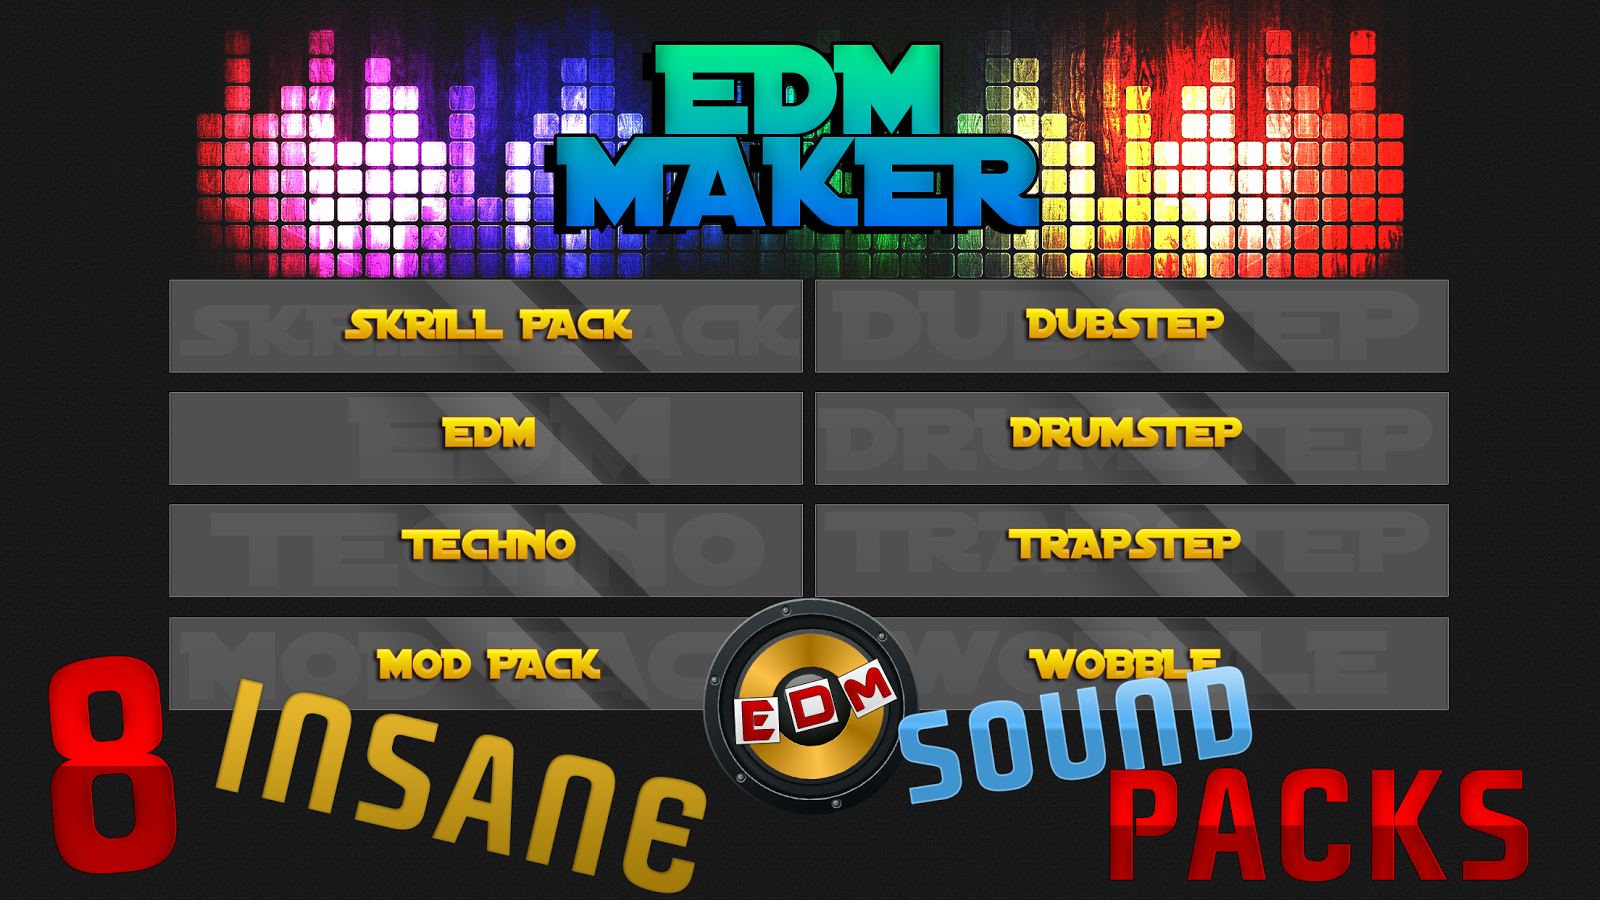 EDM MAKER 12 Screenshot 1